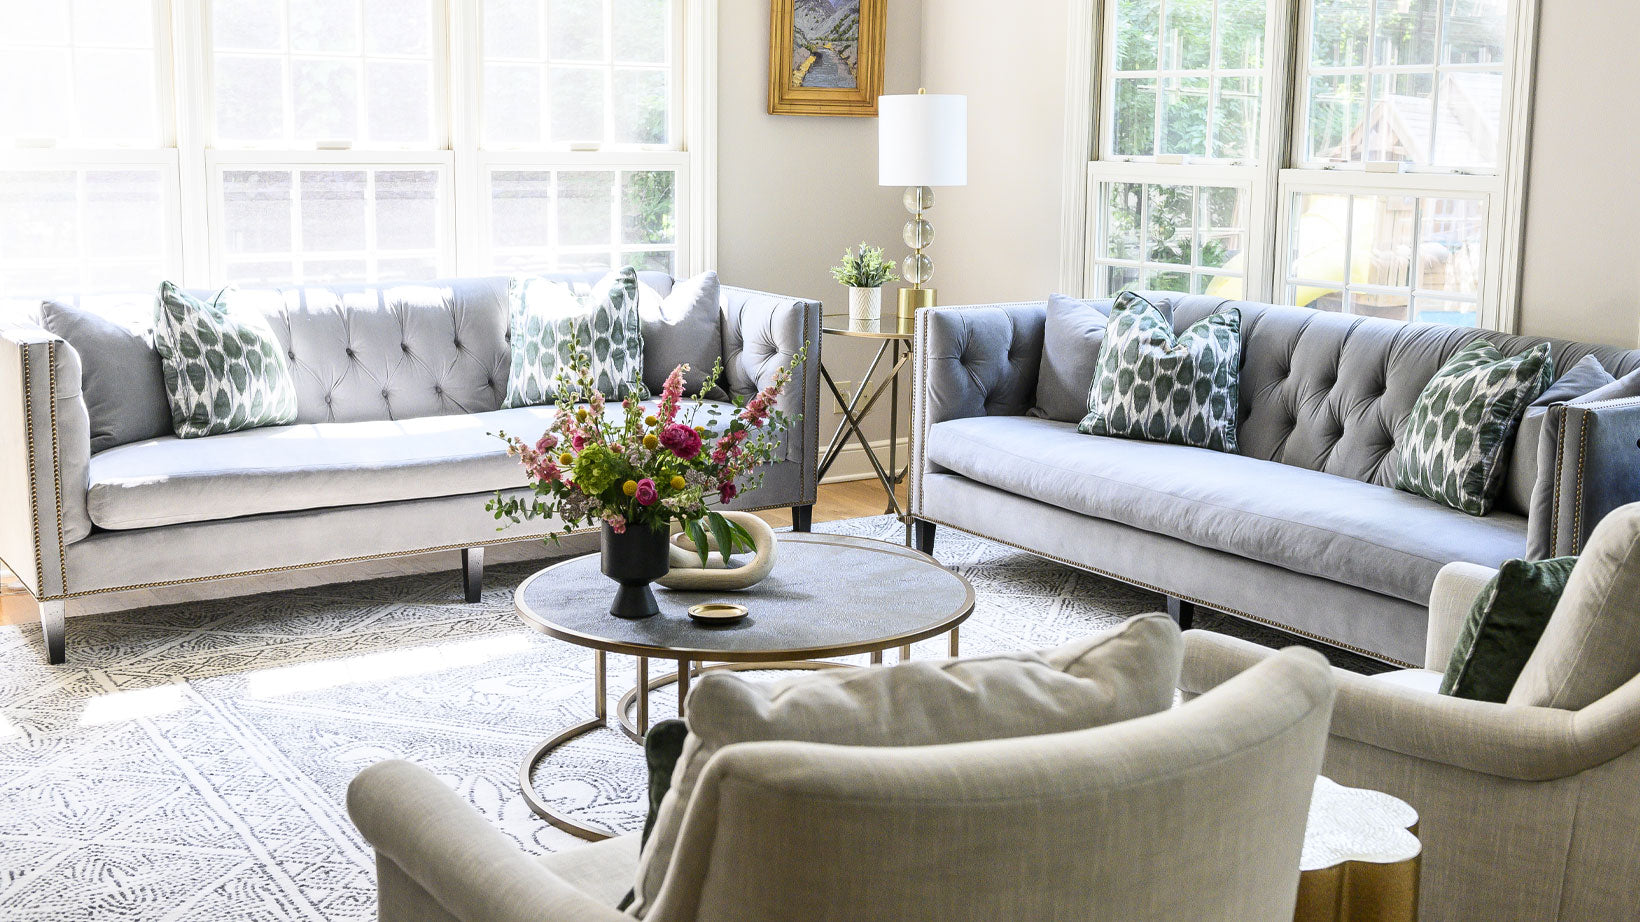 Bringing Soft Elegance to an Everyday Living Space